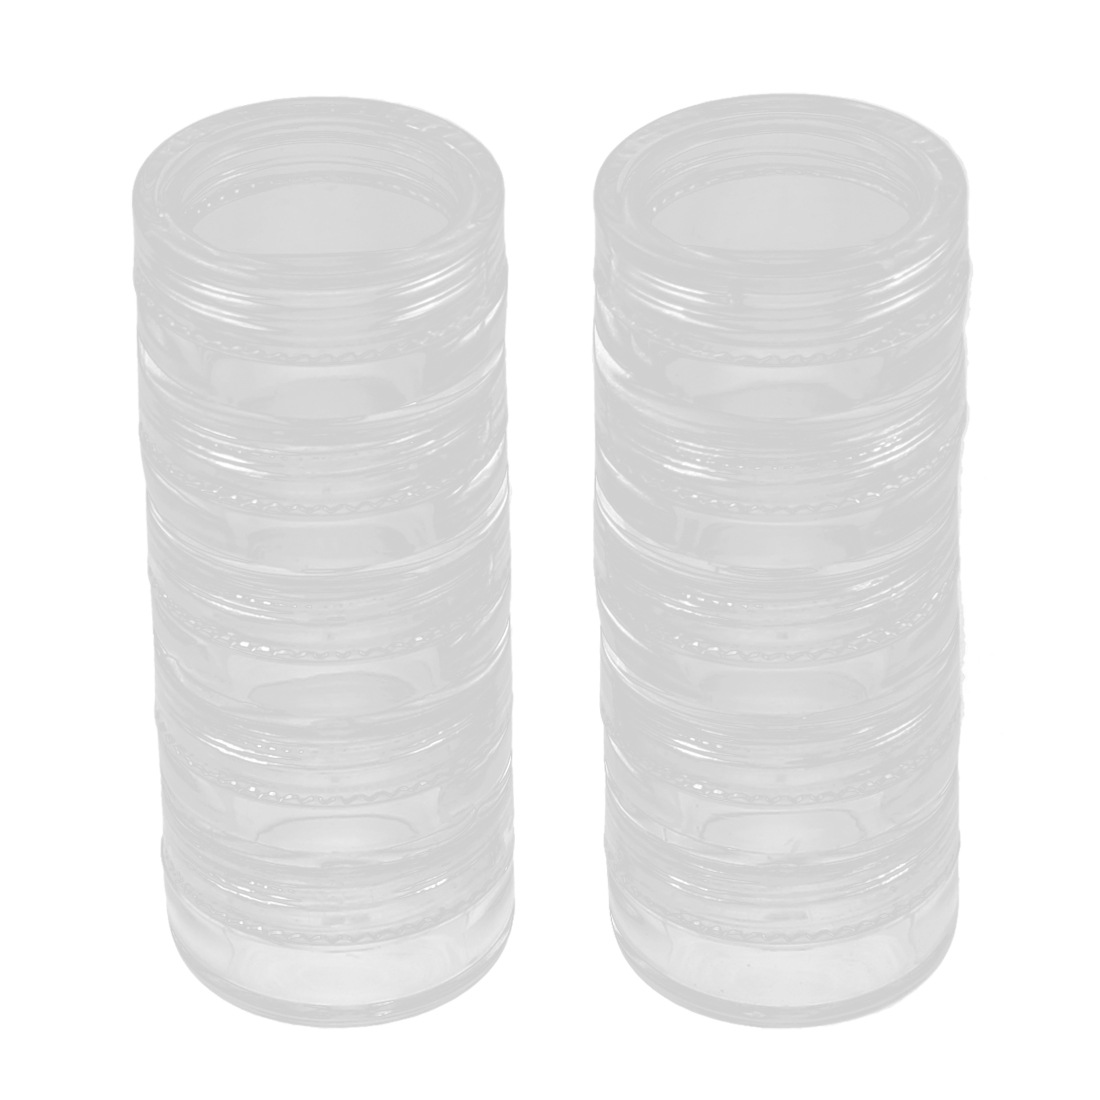 Plastic 5 Layers Makeup Cosmetic Cream Lotion Bottle Container 5g 2pcs